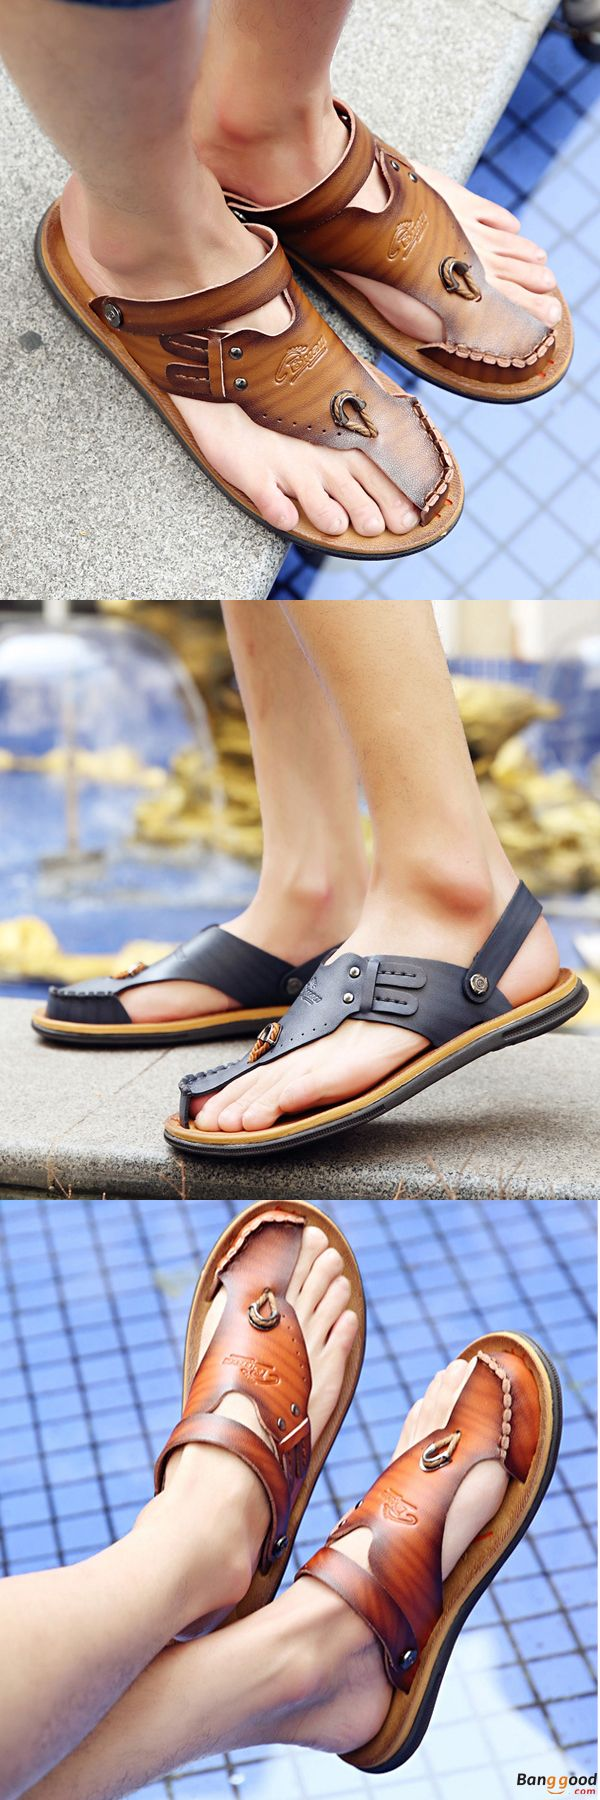 US$24.68 + Free shipping. Men Sandals, Leather Sandals